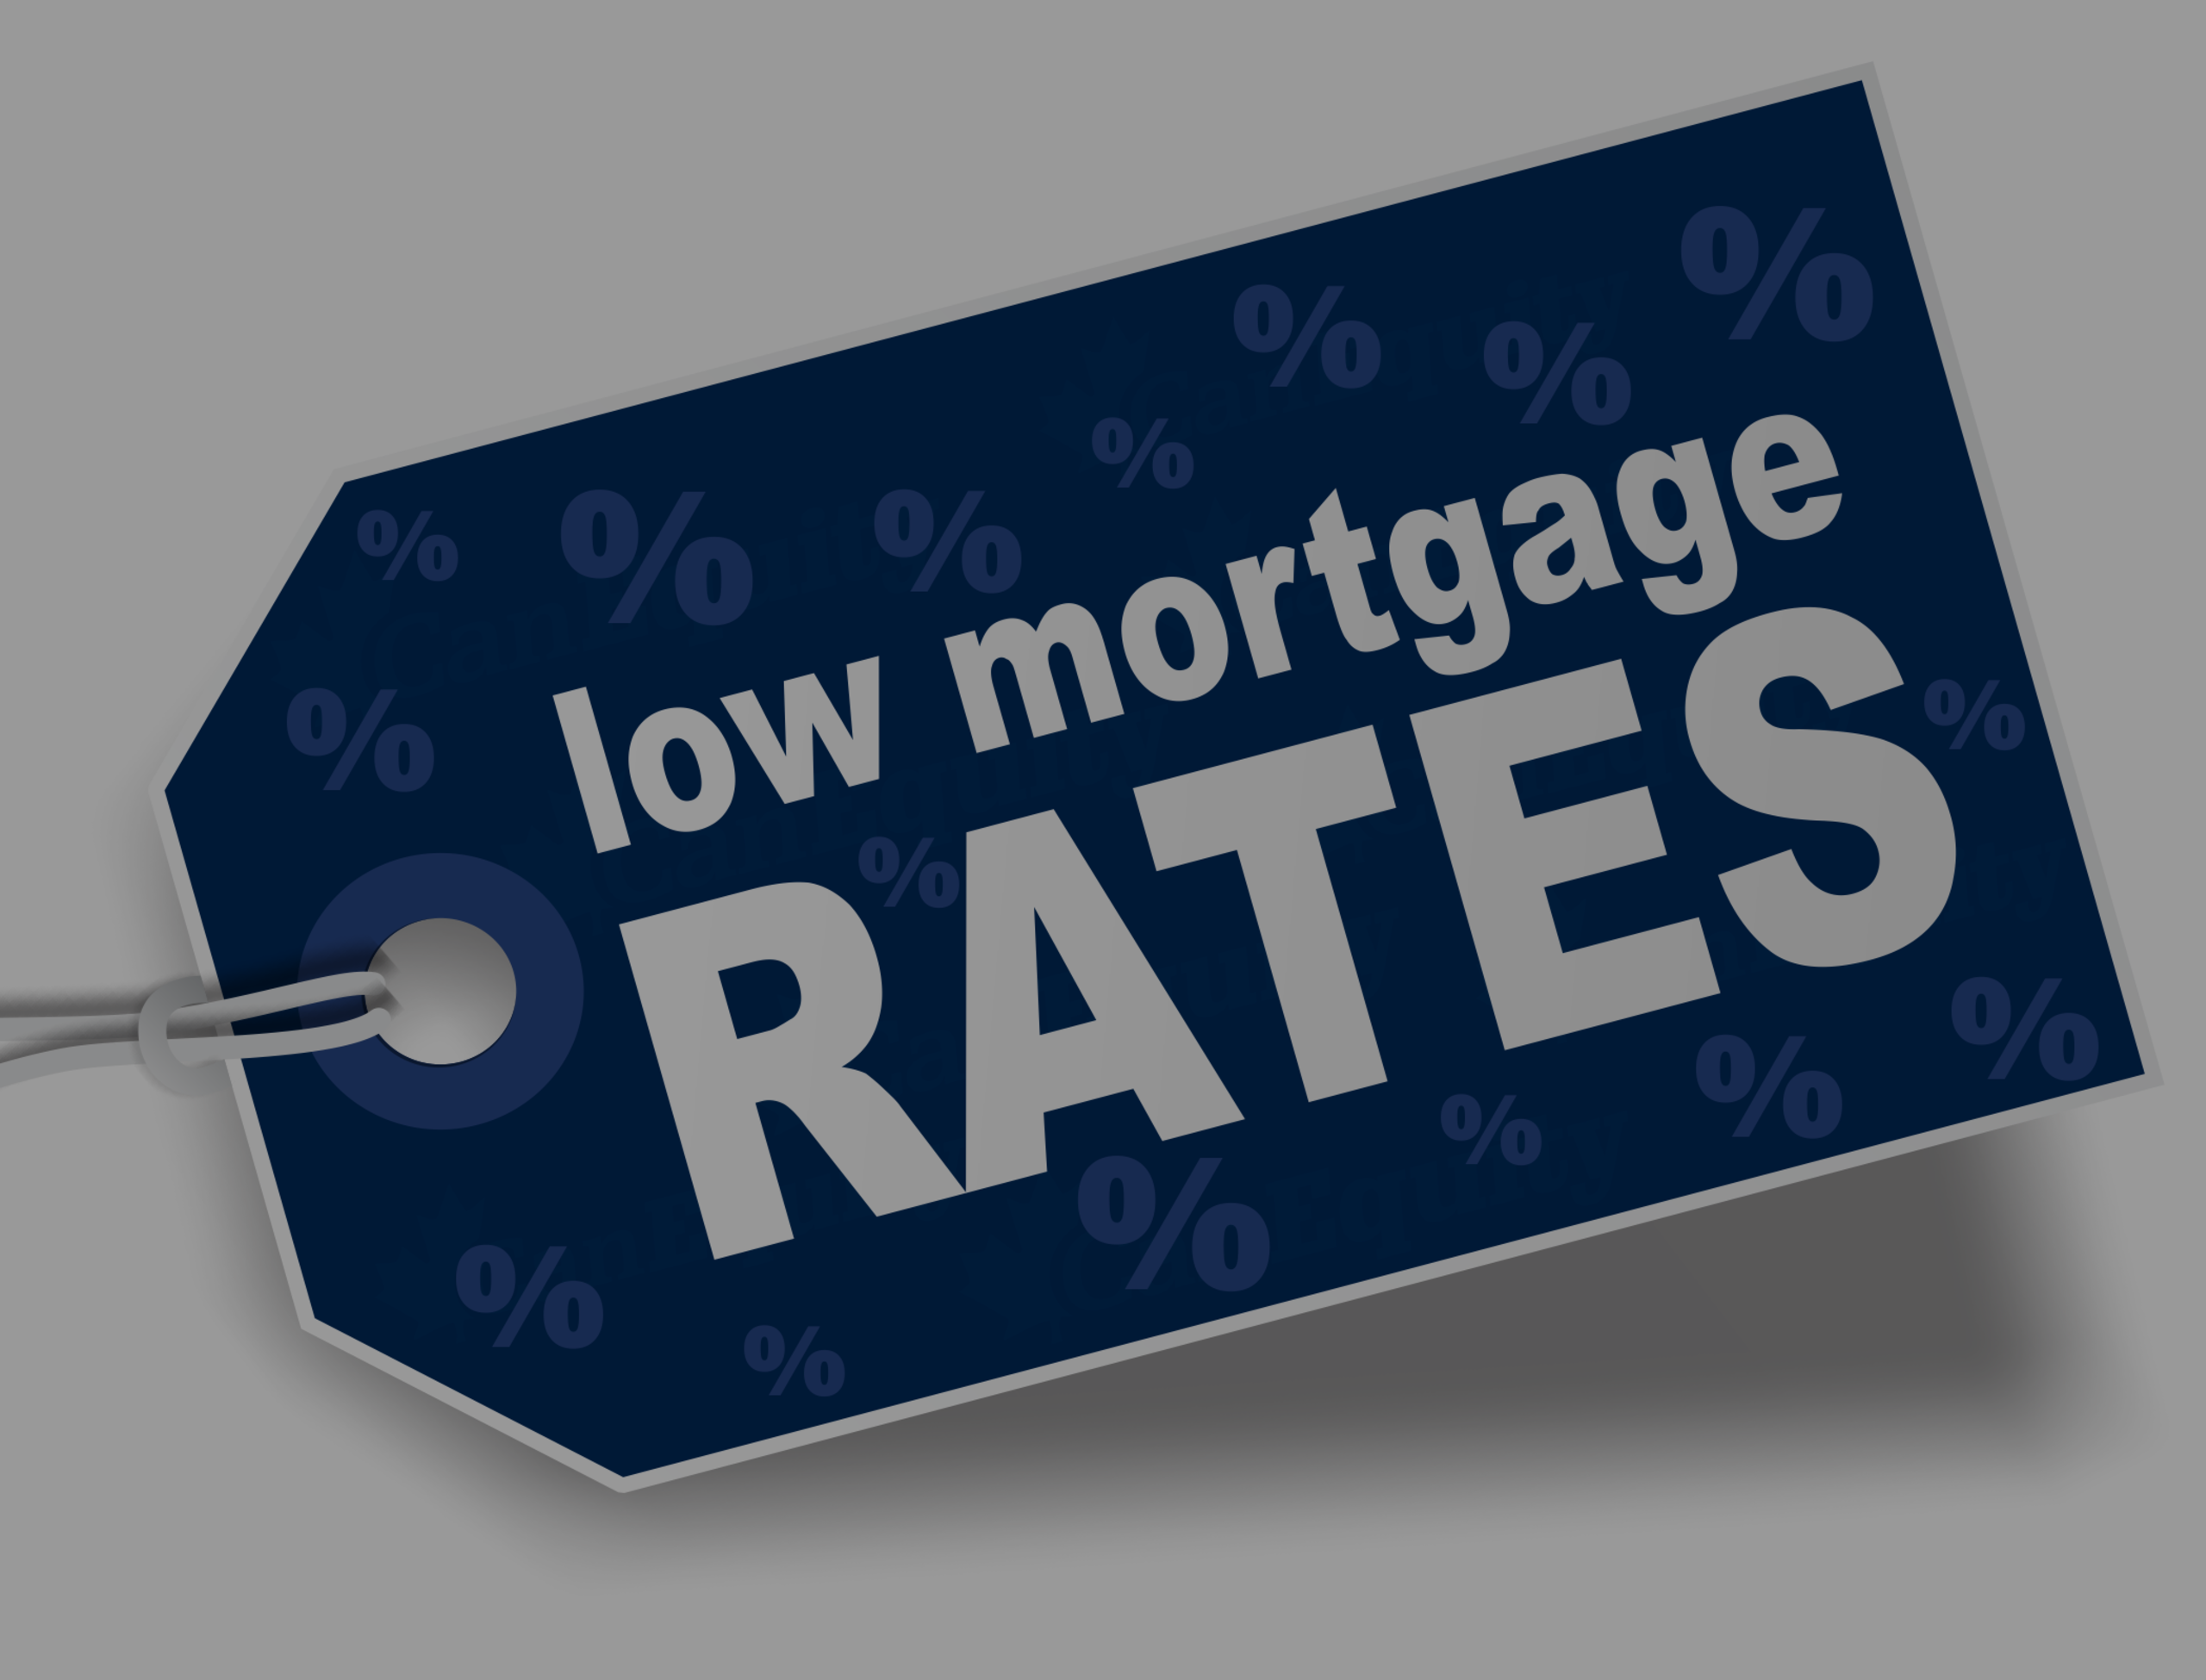 Outline the process of getting the best deal on a mortgage